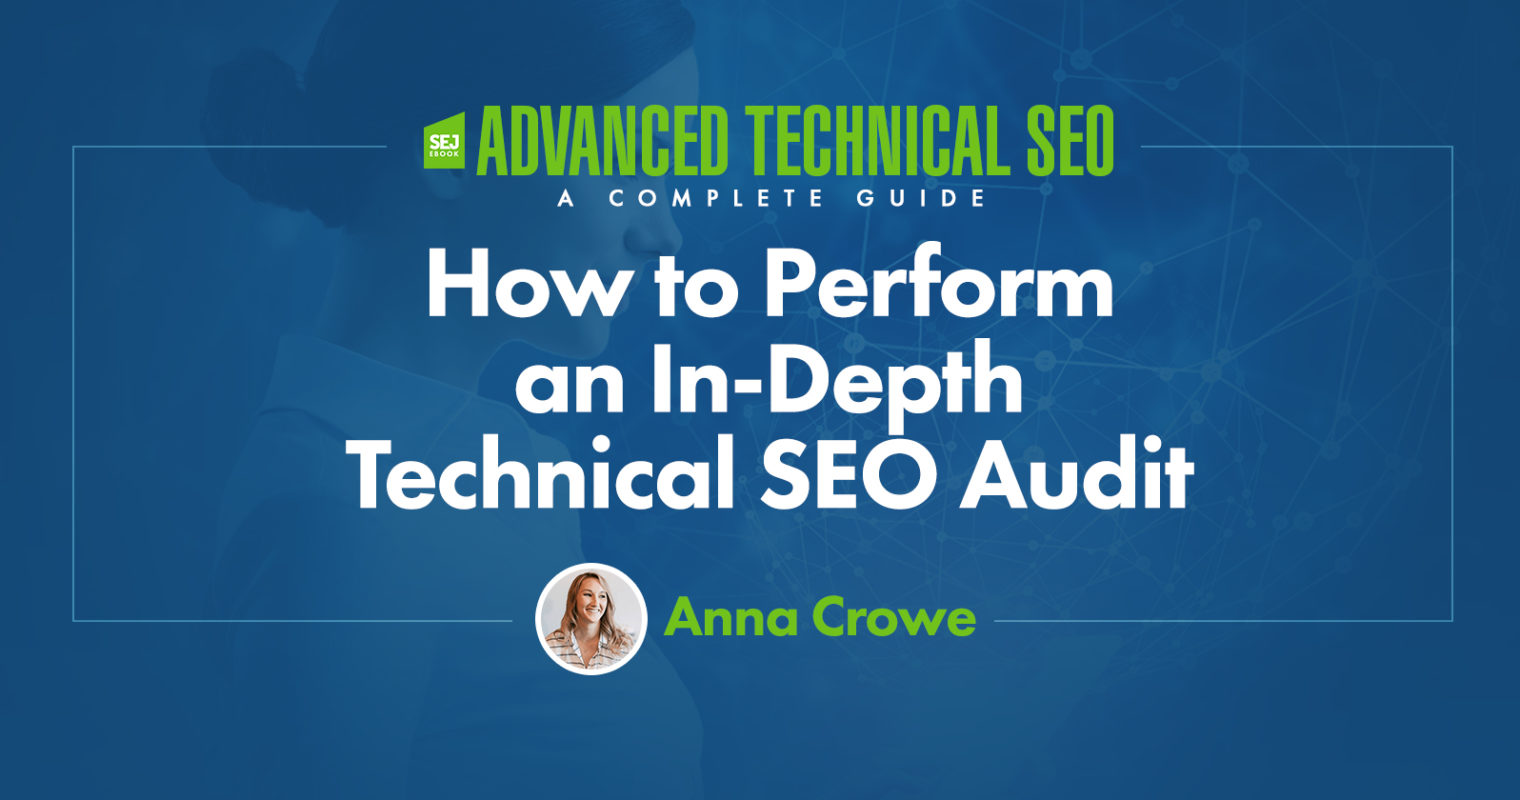 How to Perform an In-Depth Technical SEO Audit